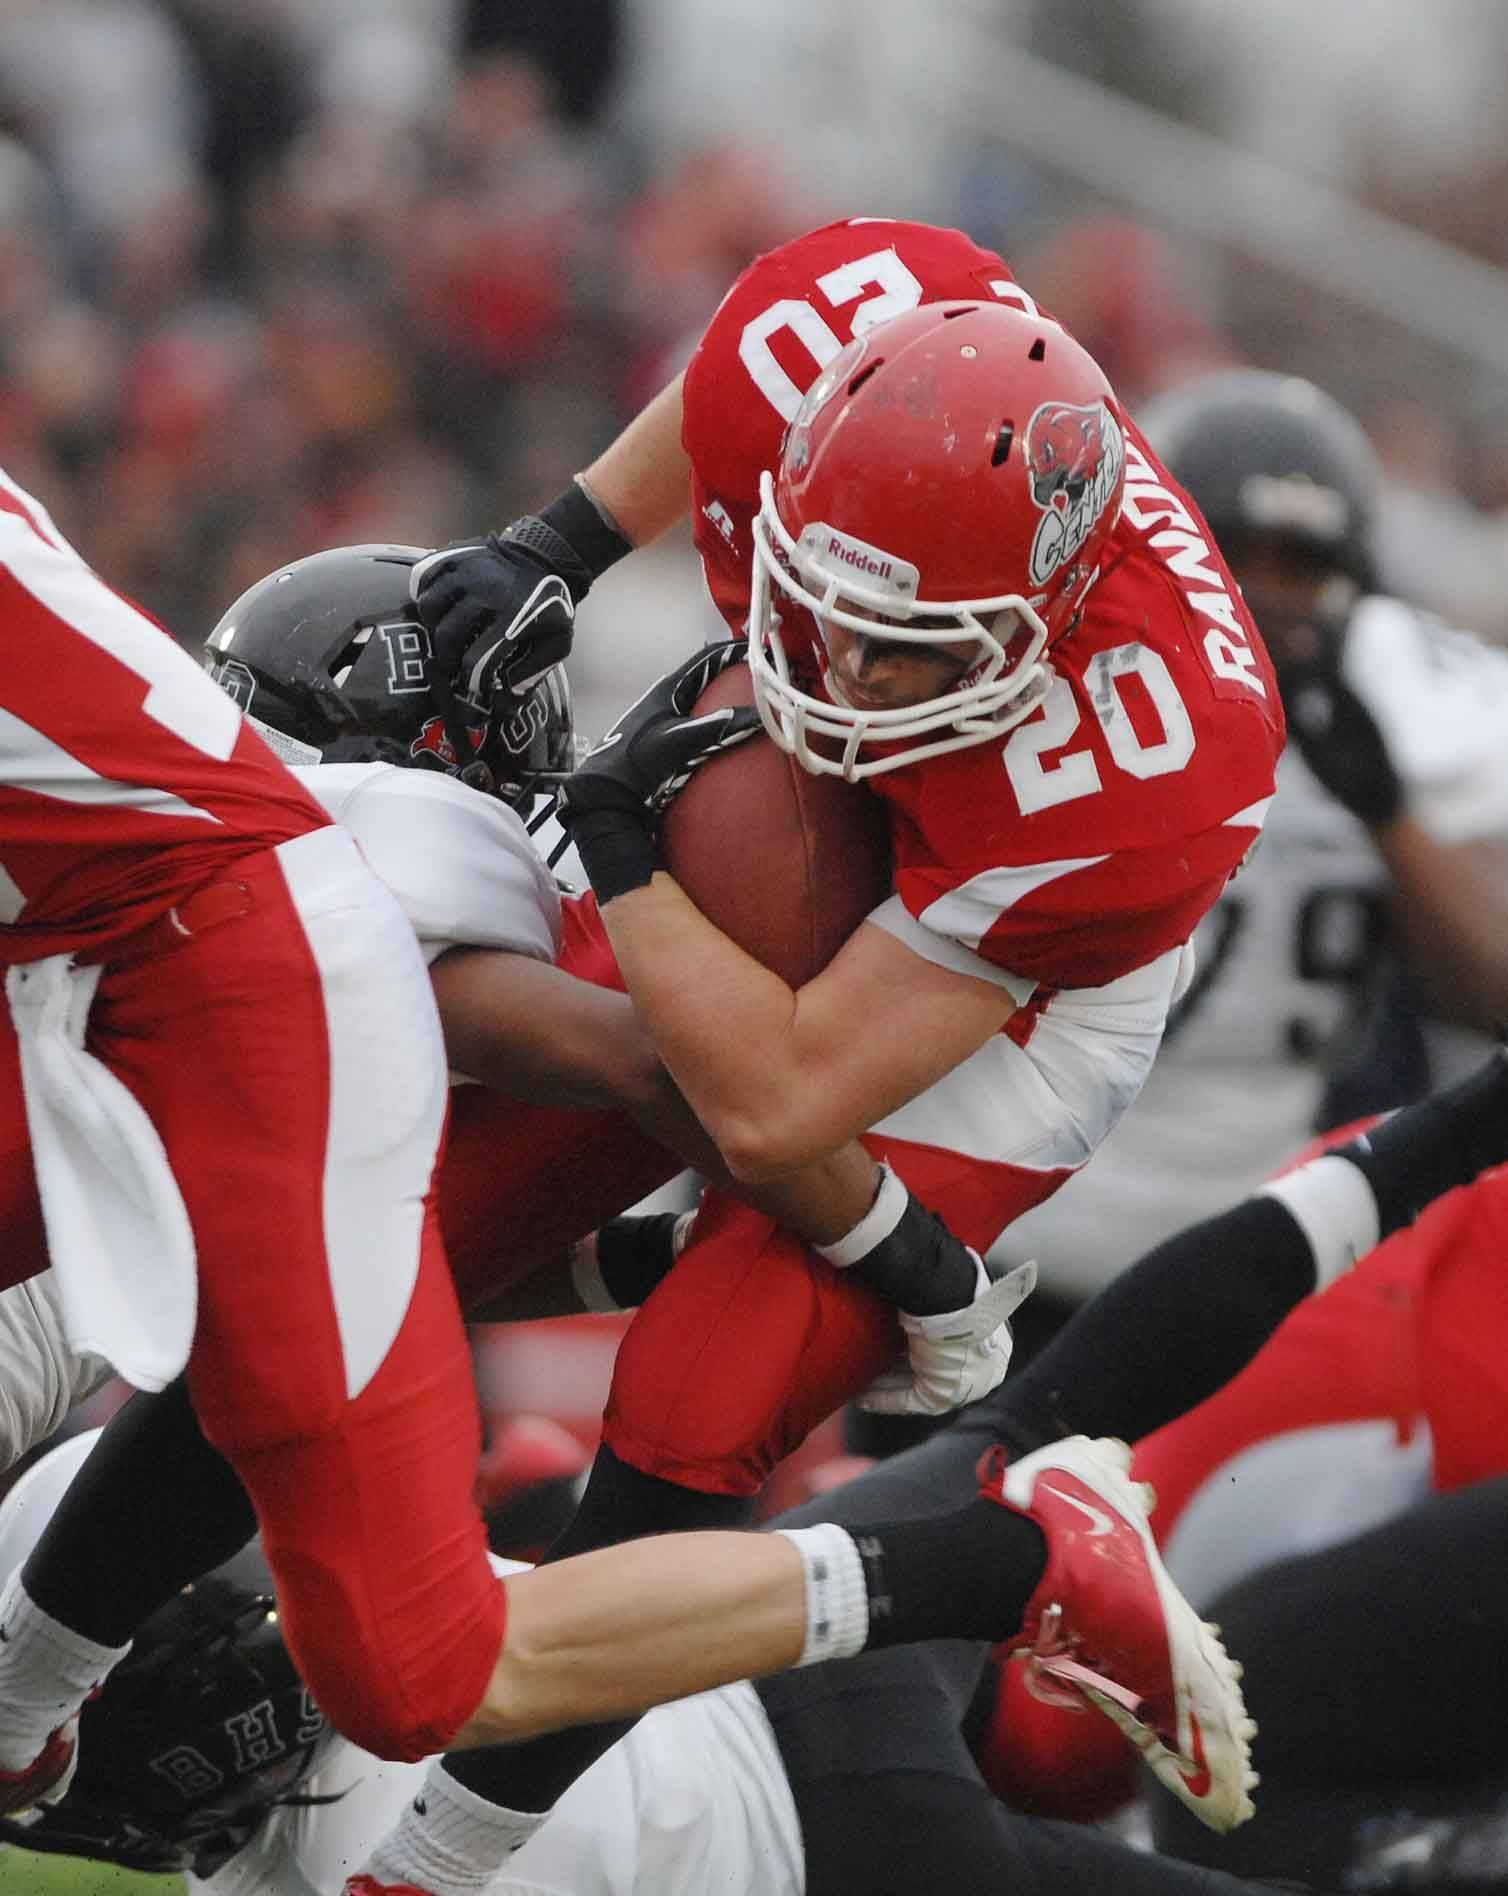 Matt Randolph of Naperville Centrak during the Bolingbrook at Naperville Central football Class 8A semifinals Saturday.